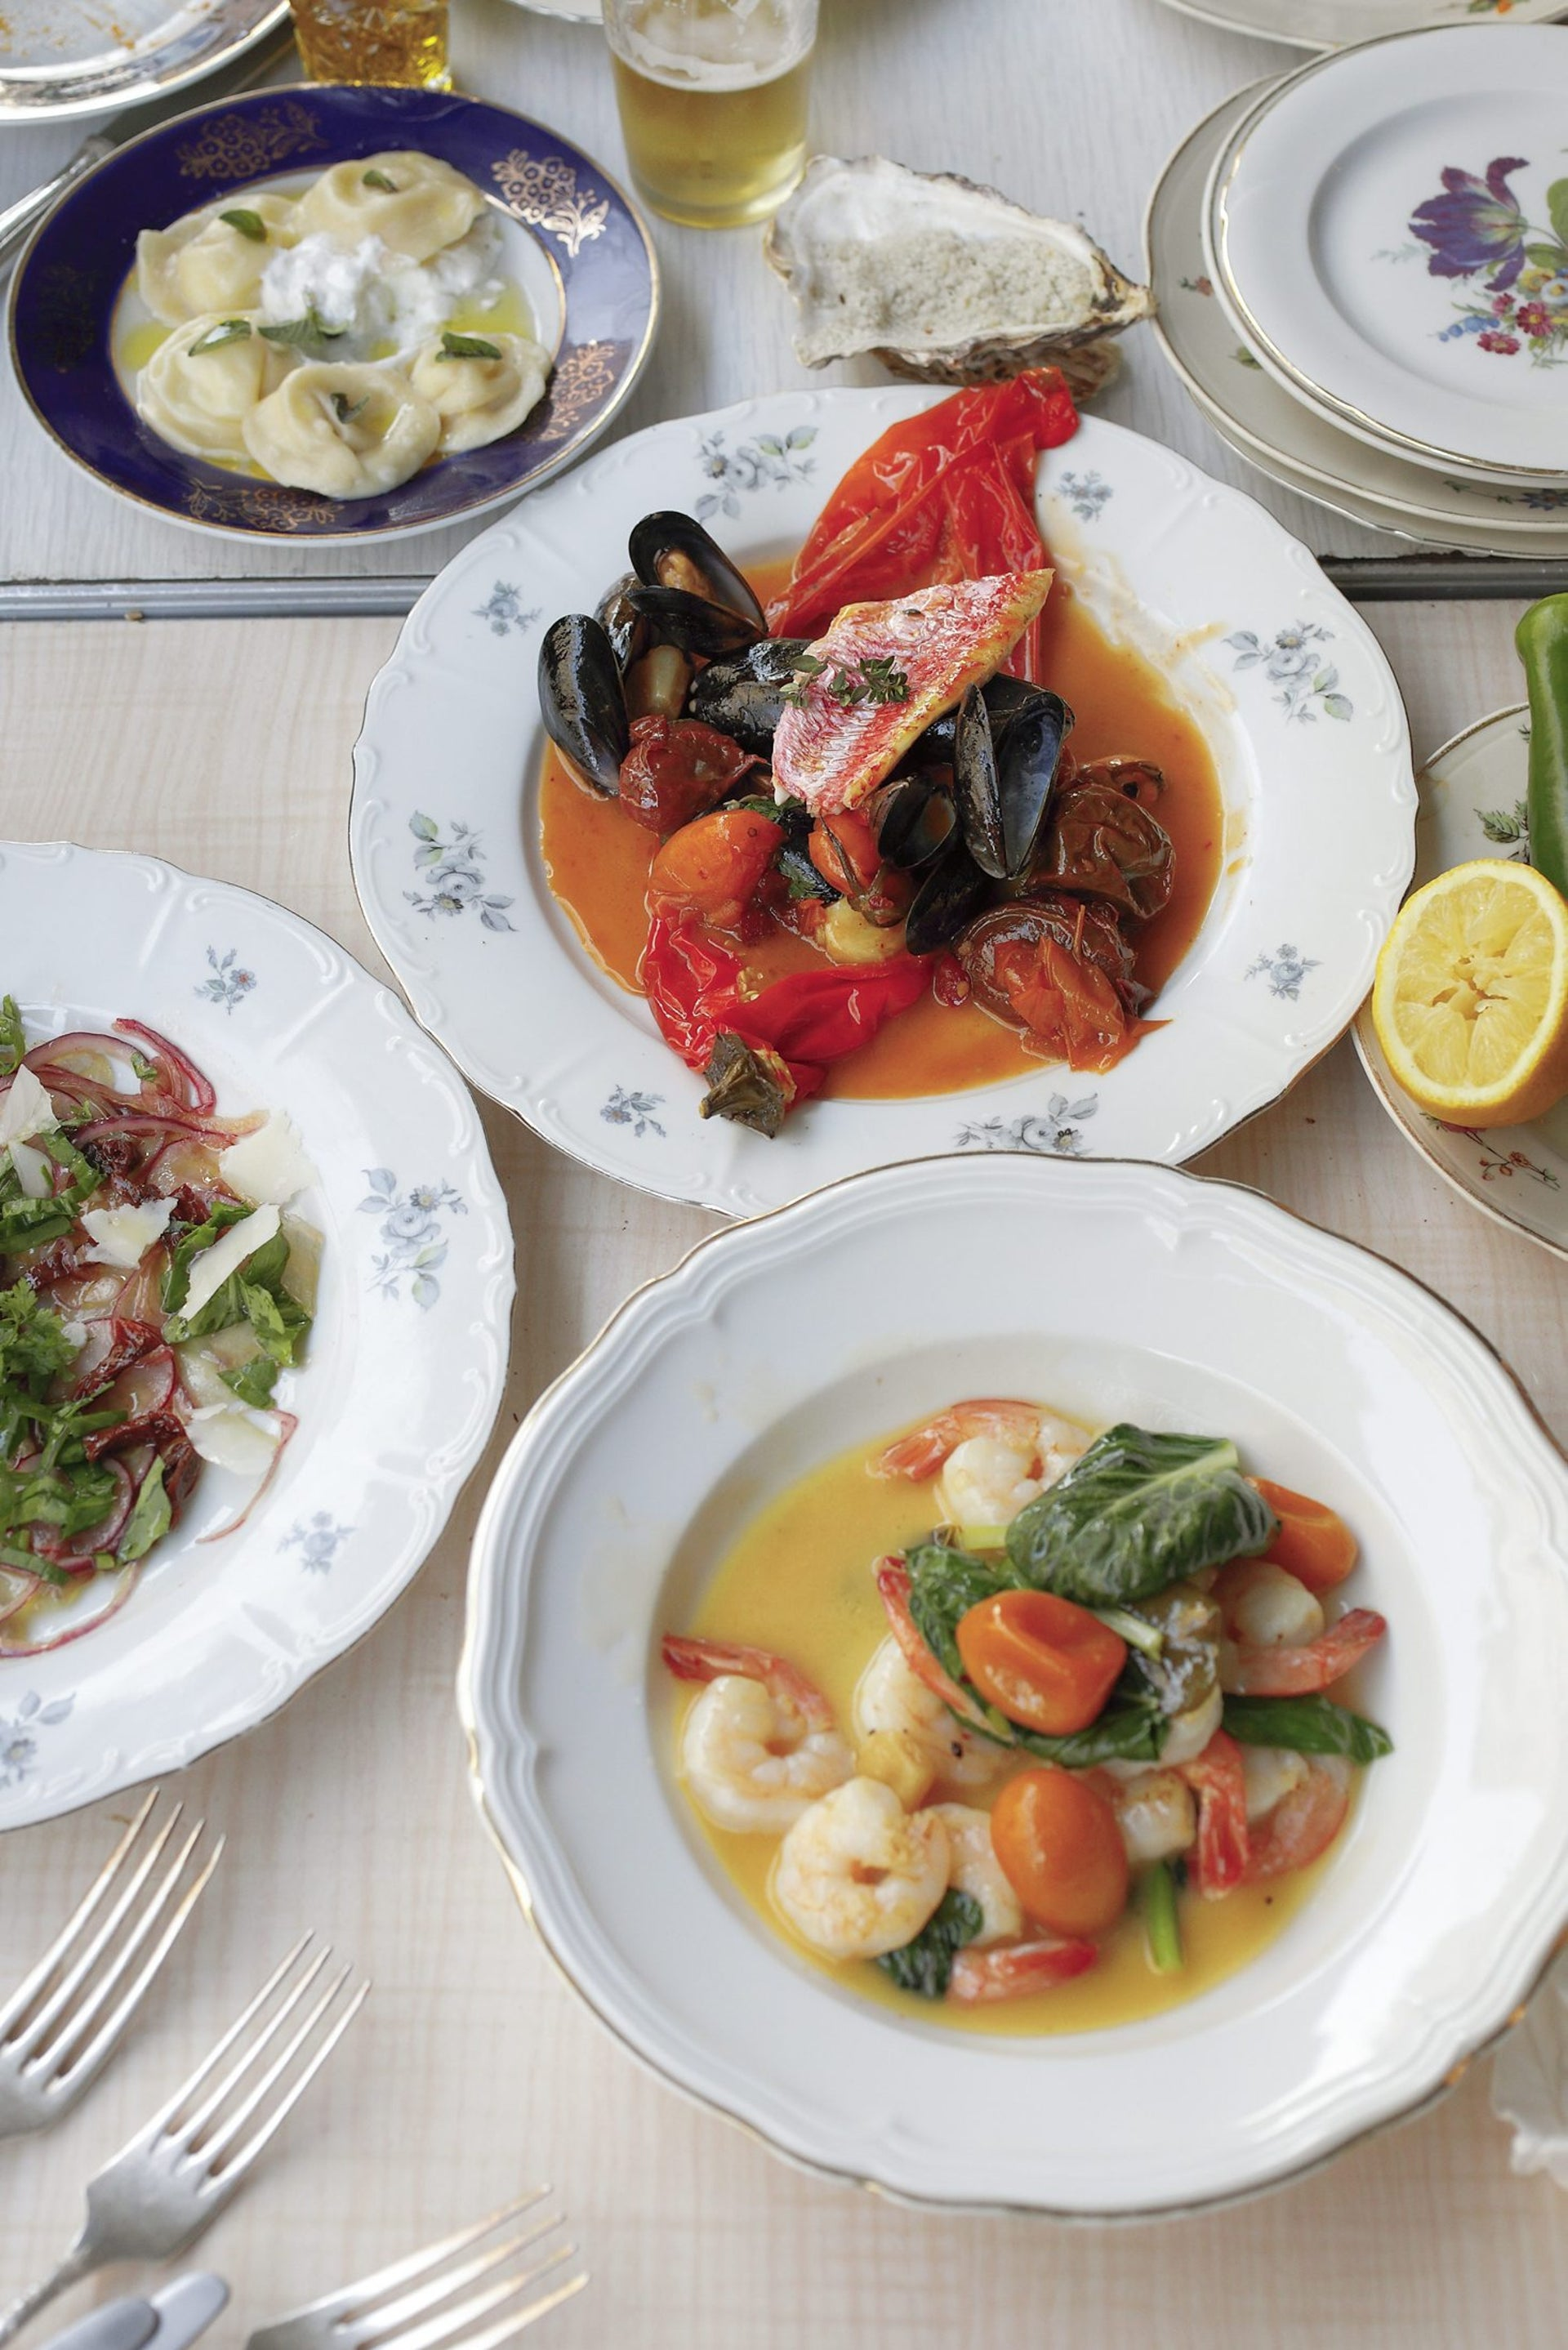 Shrimp, mussels and other seafood at the Hamara Talpiot tavern.